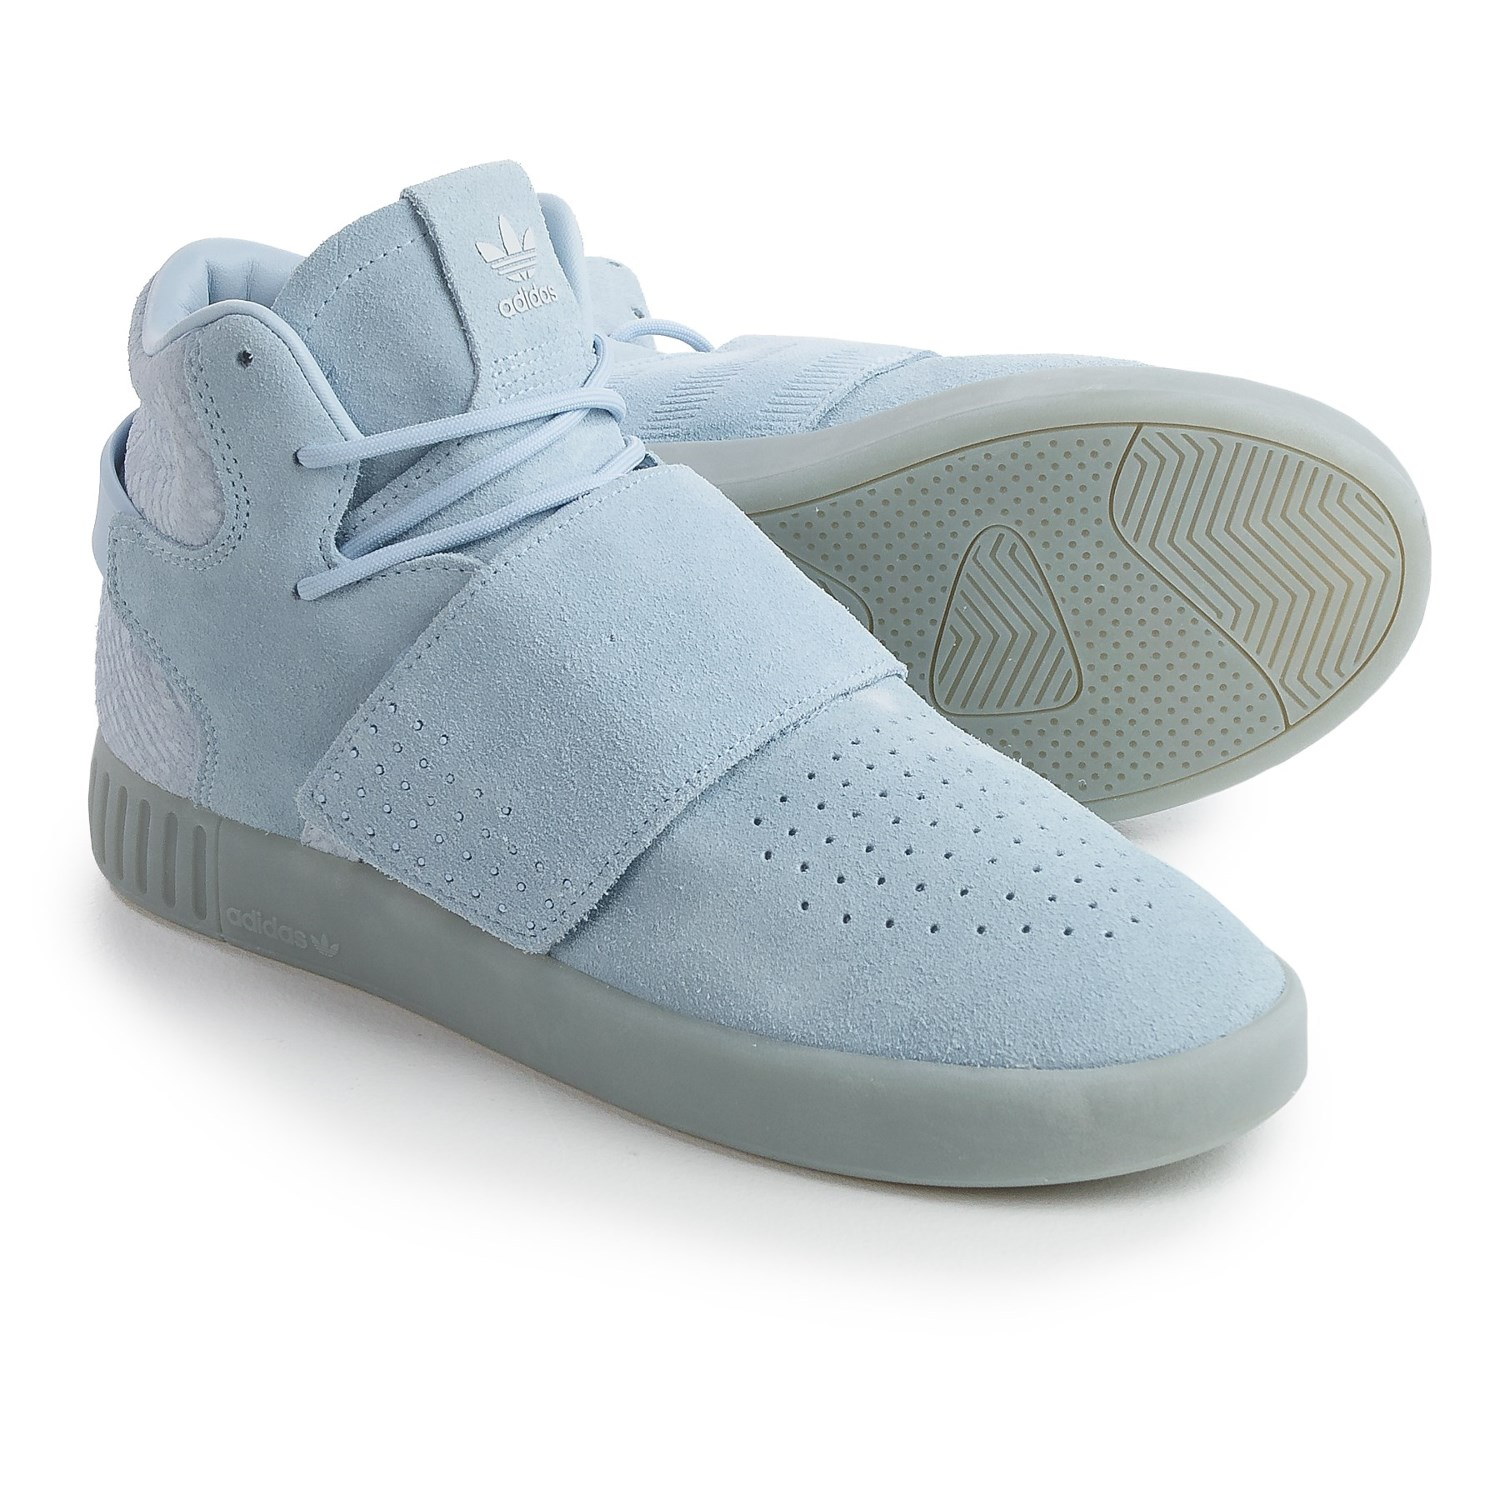 adidas strap shoes